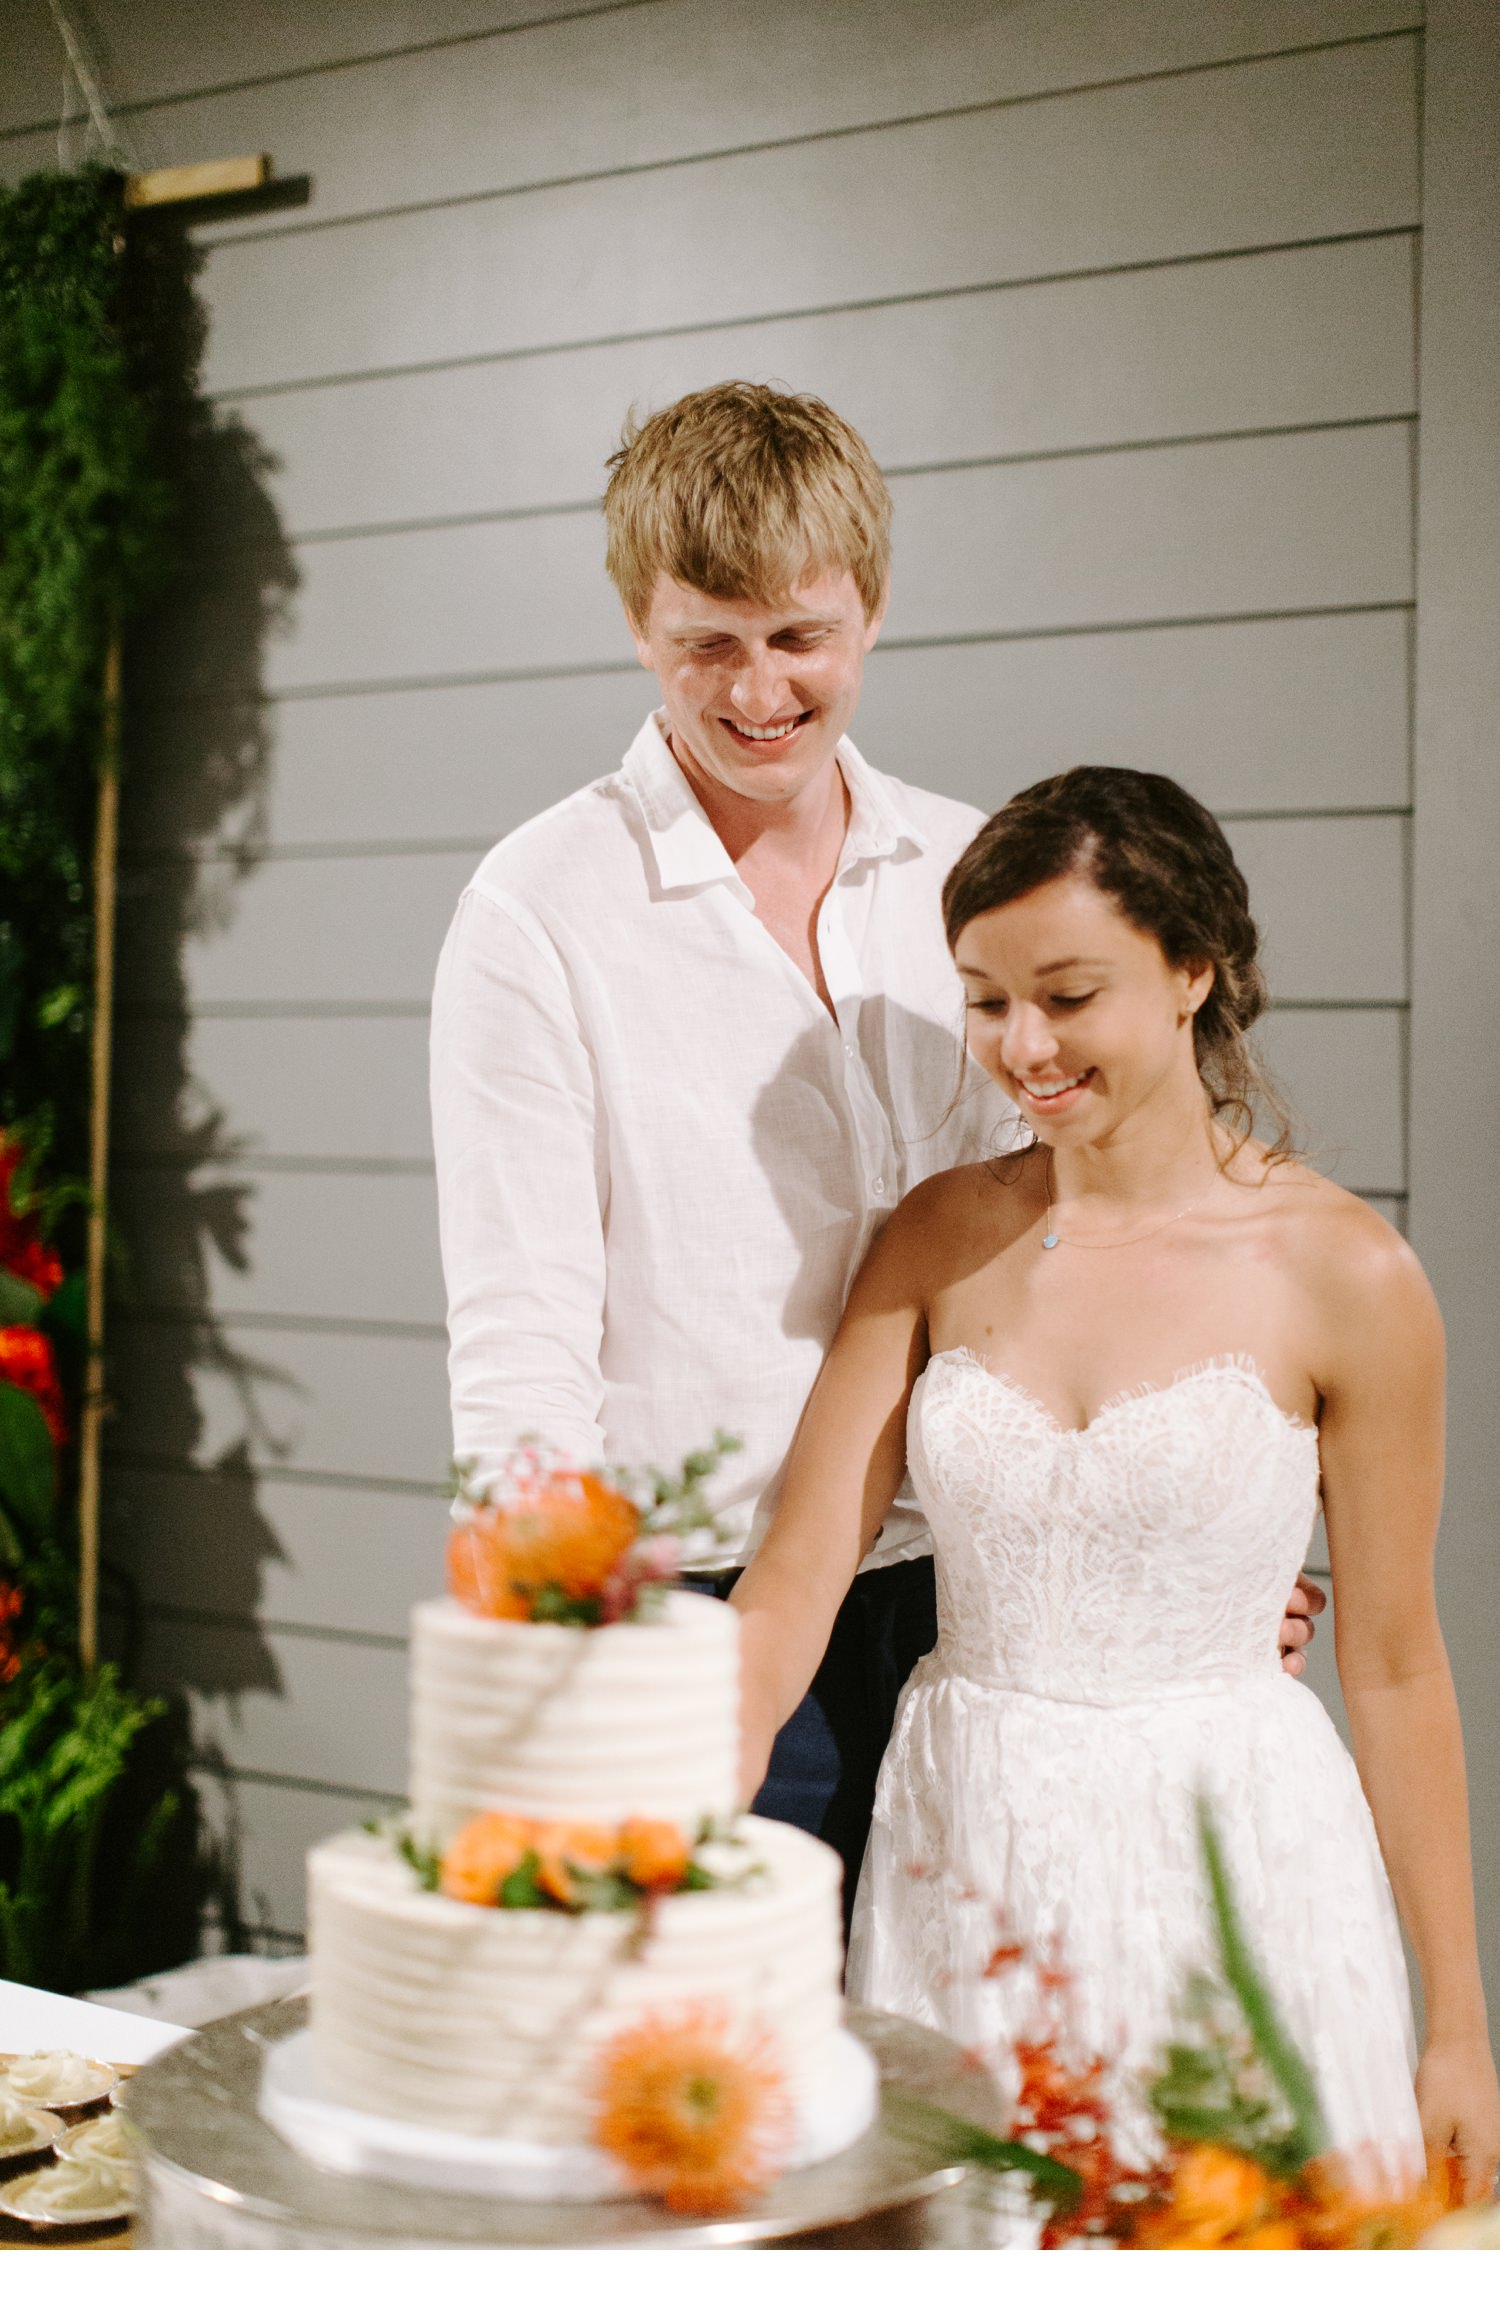 cape san blas wedding cake cutting